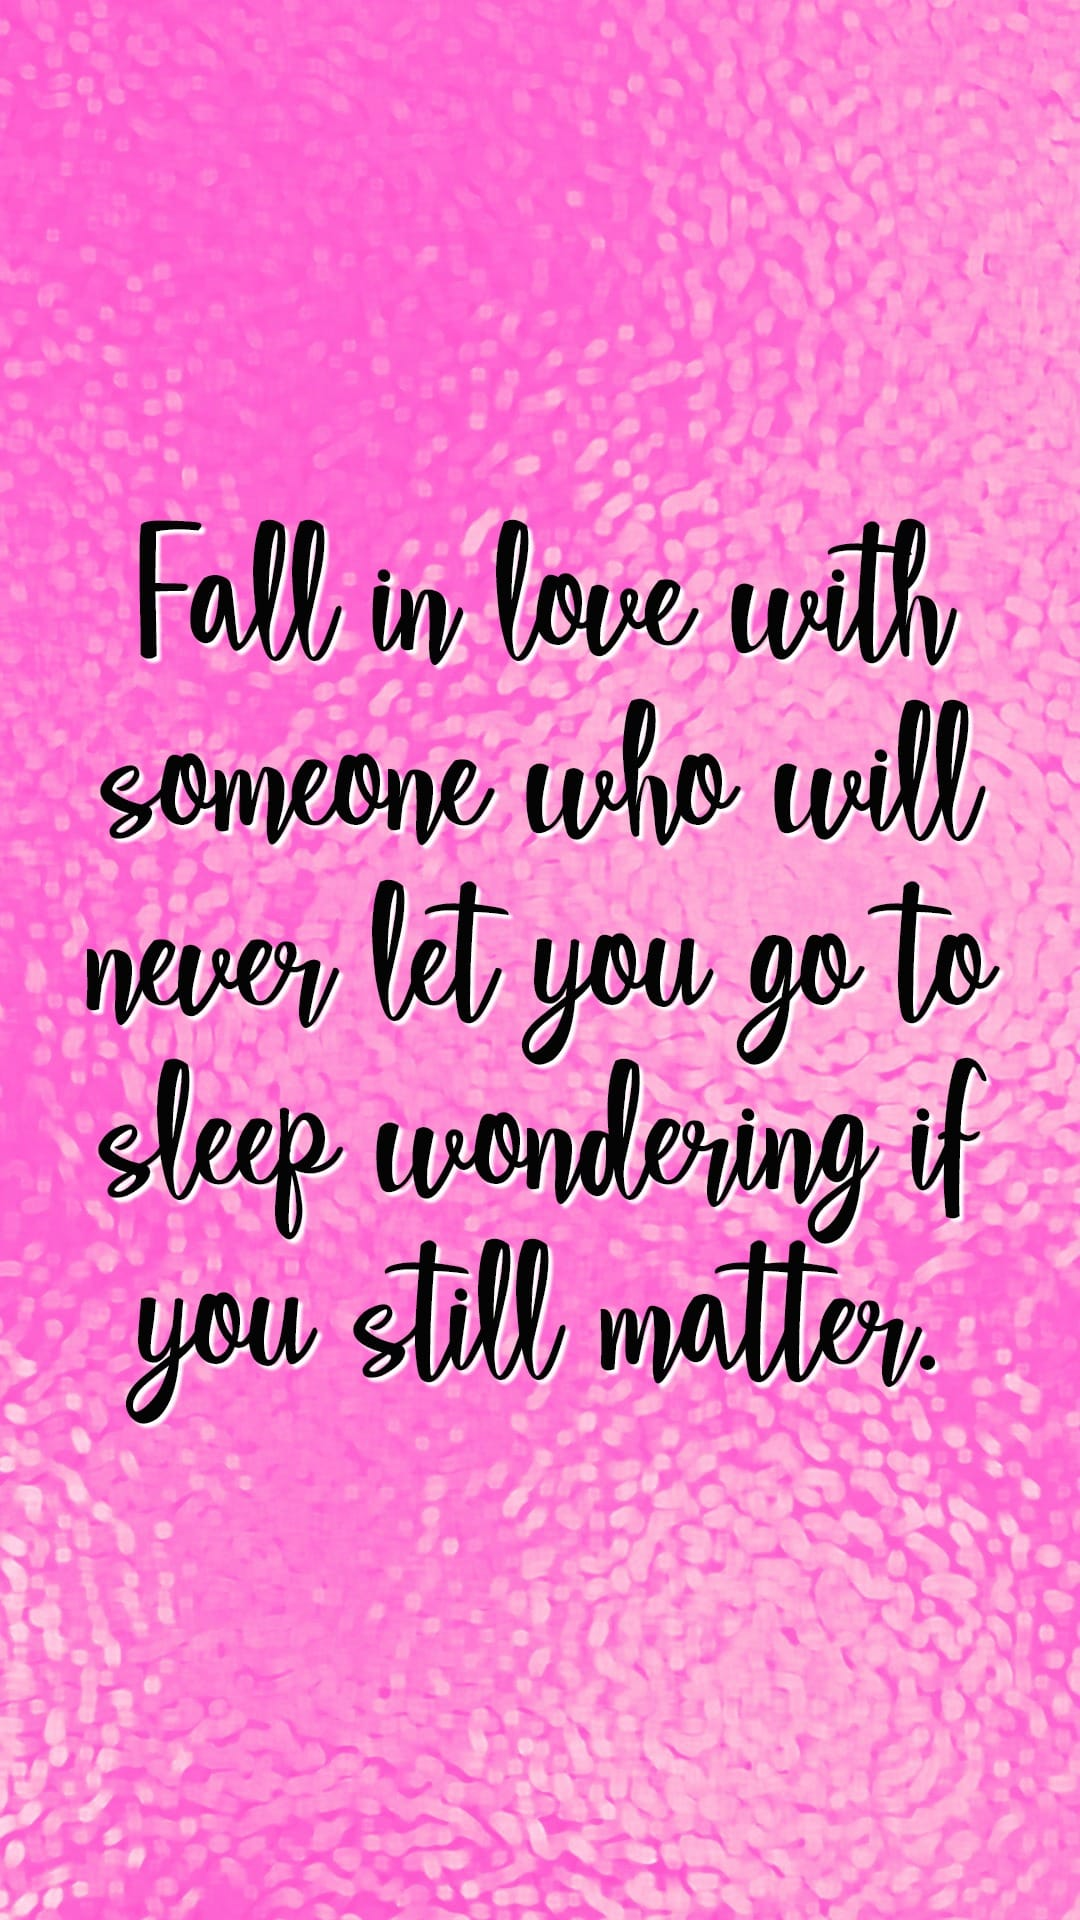 Fall in love with someone who will never let you go to sleep wondering if you still matter